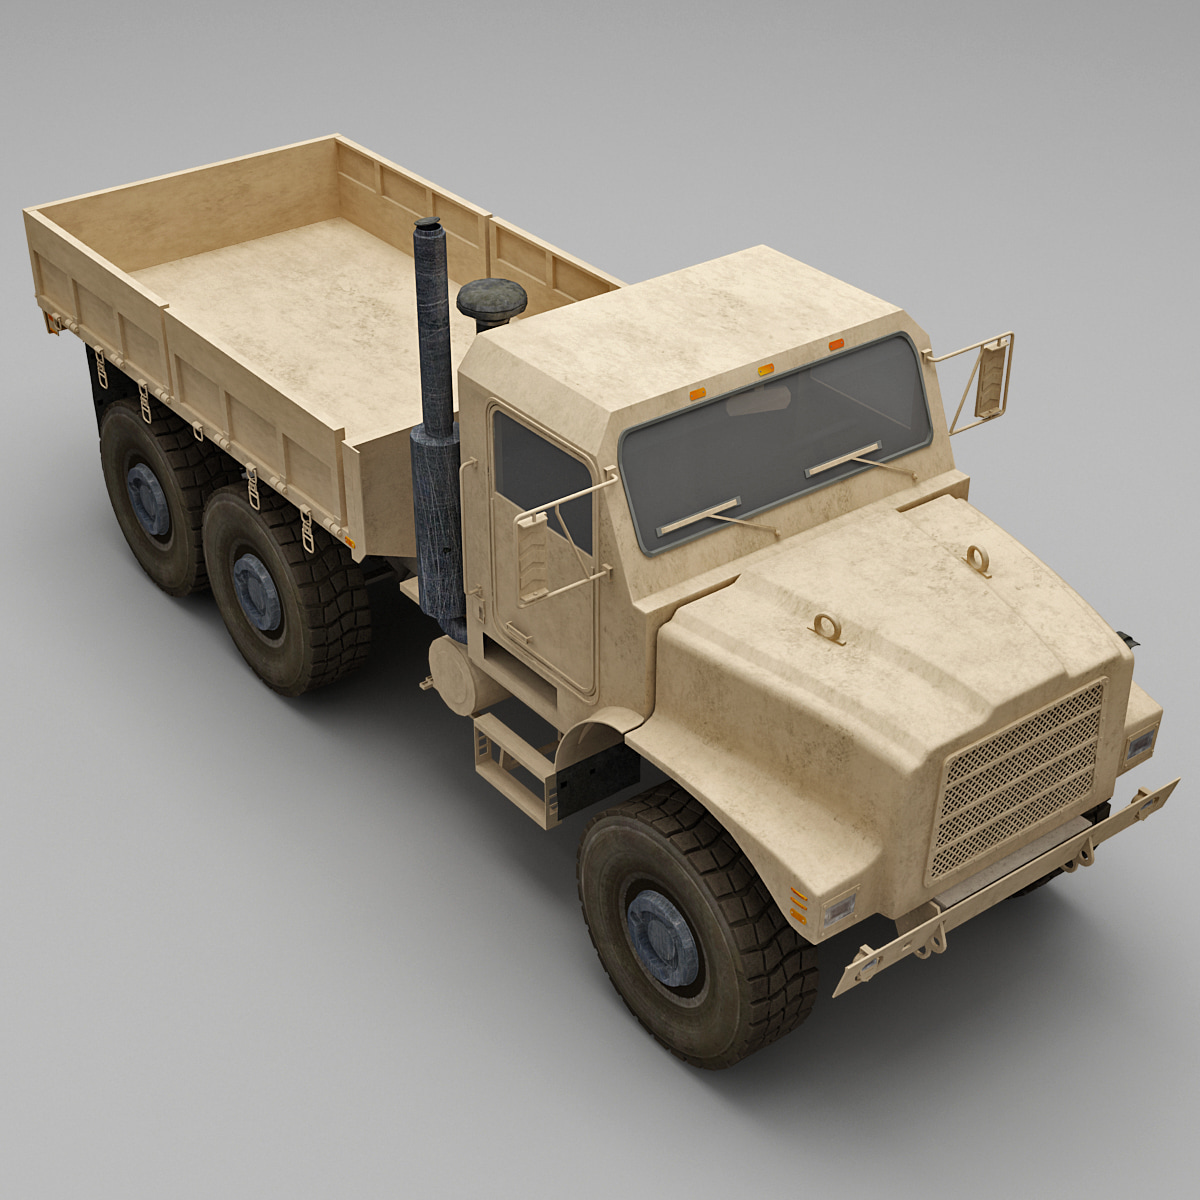 Oshkosh model